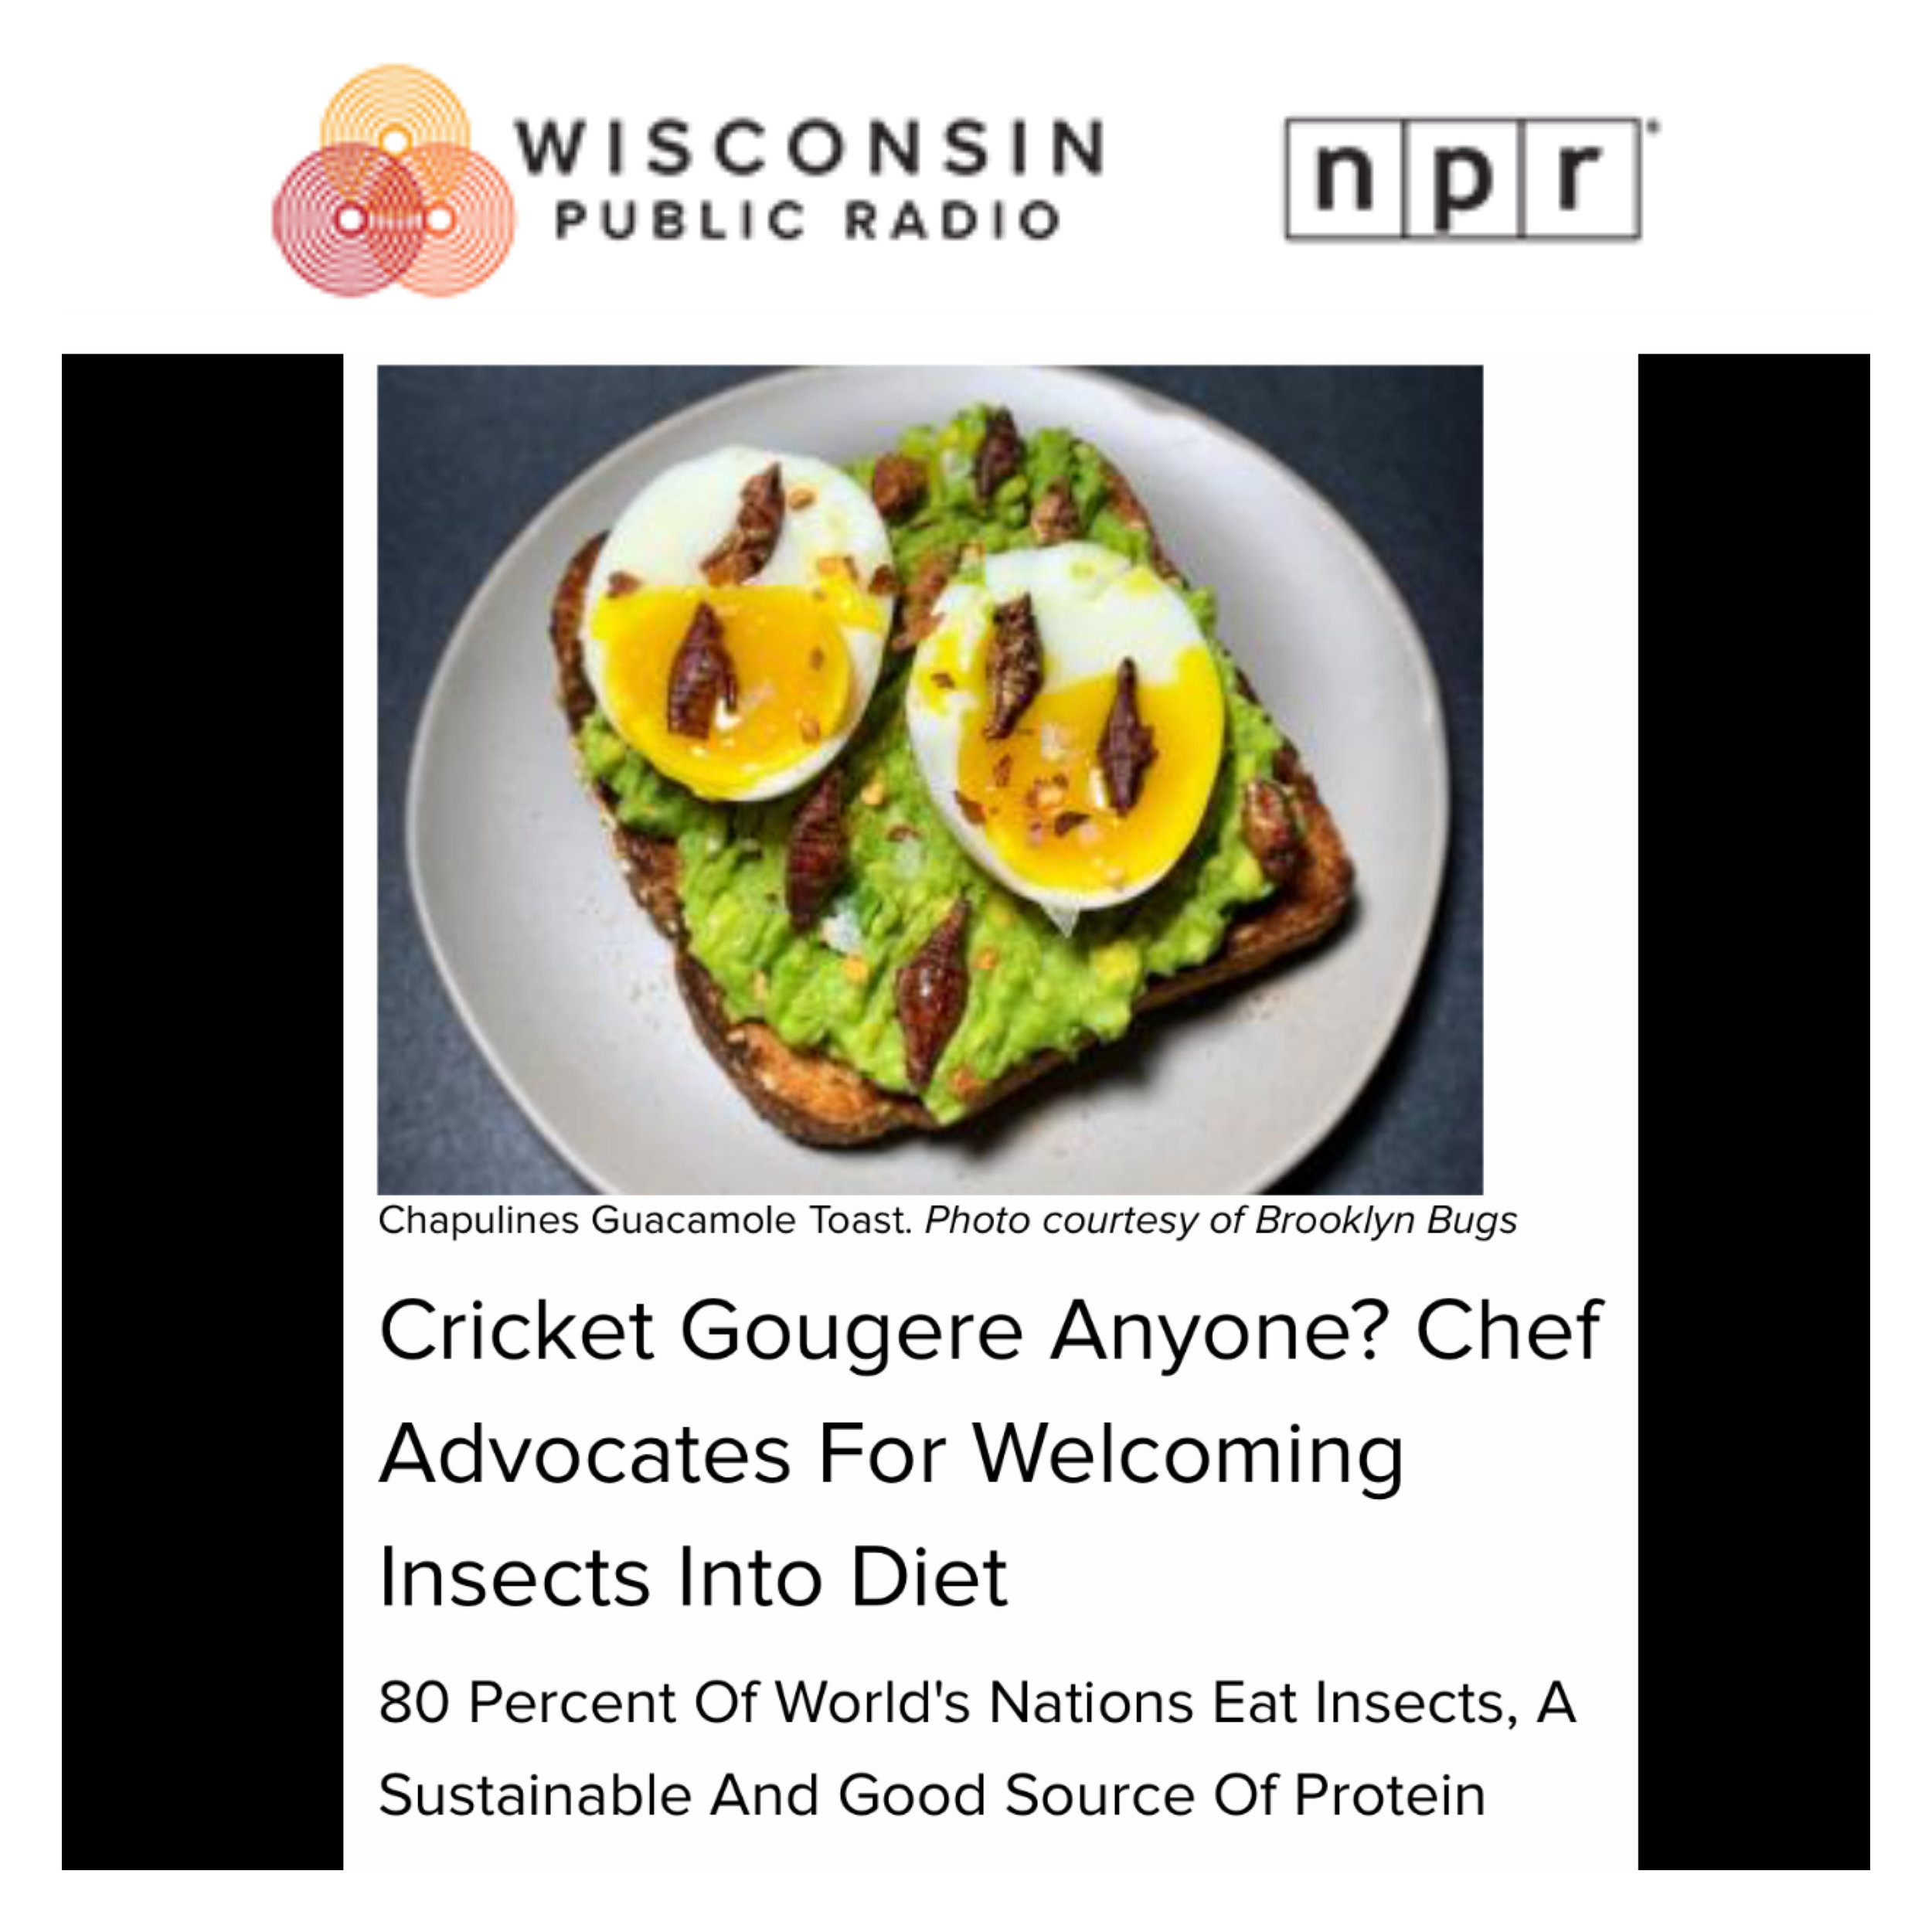 https://www.wpr.org/cricket-gougere-anyone-chef-advocates-welcoming-insects-diet